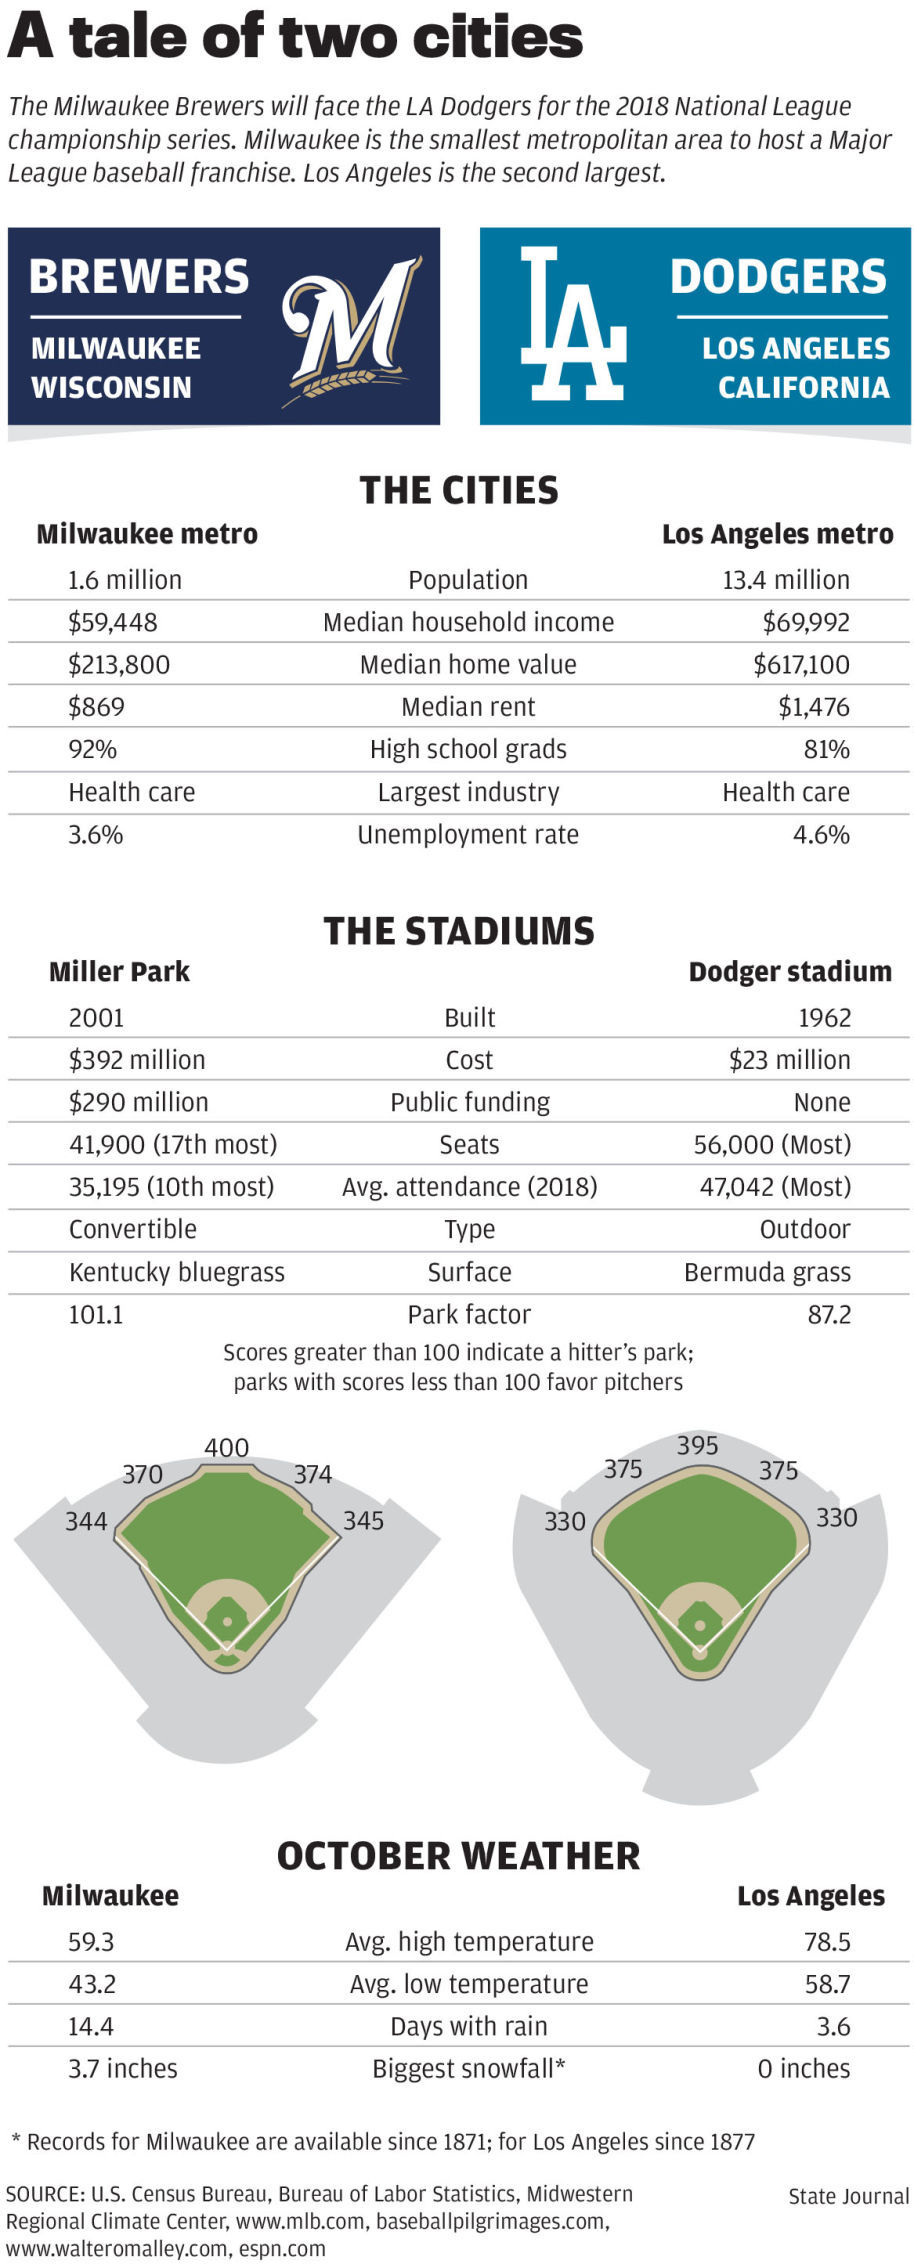 A tale of two cities: Brewers vs. Dodgers graphic